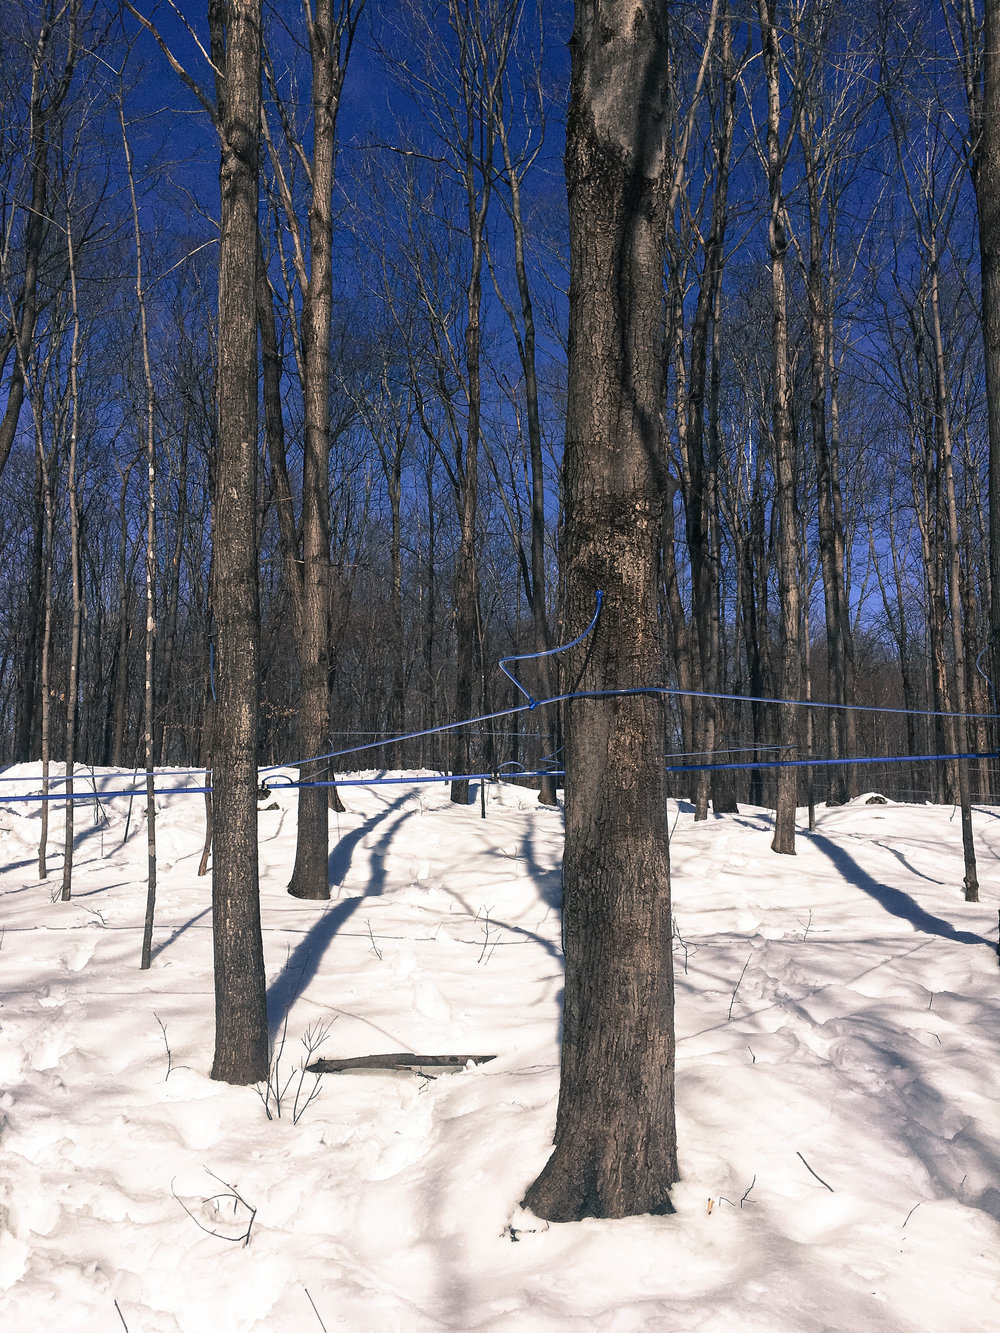 The blue tubes on the trees are connected and bring the maple water to a big reservoir. This is how maple syrup is done in a Cabane à sucre